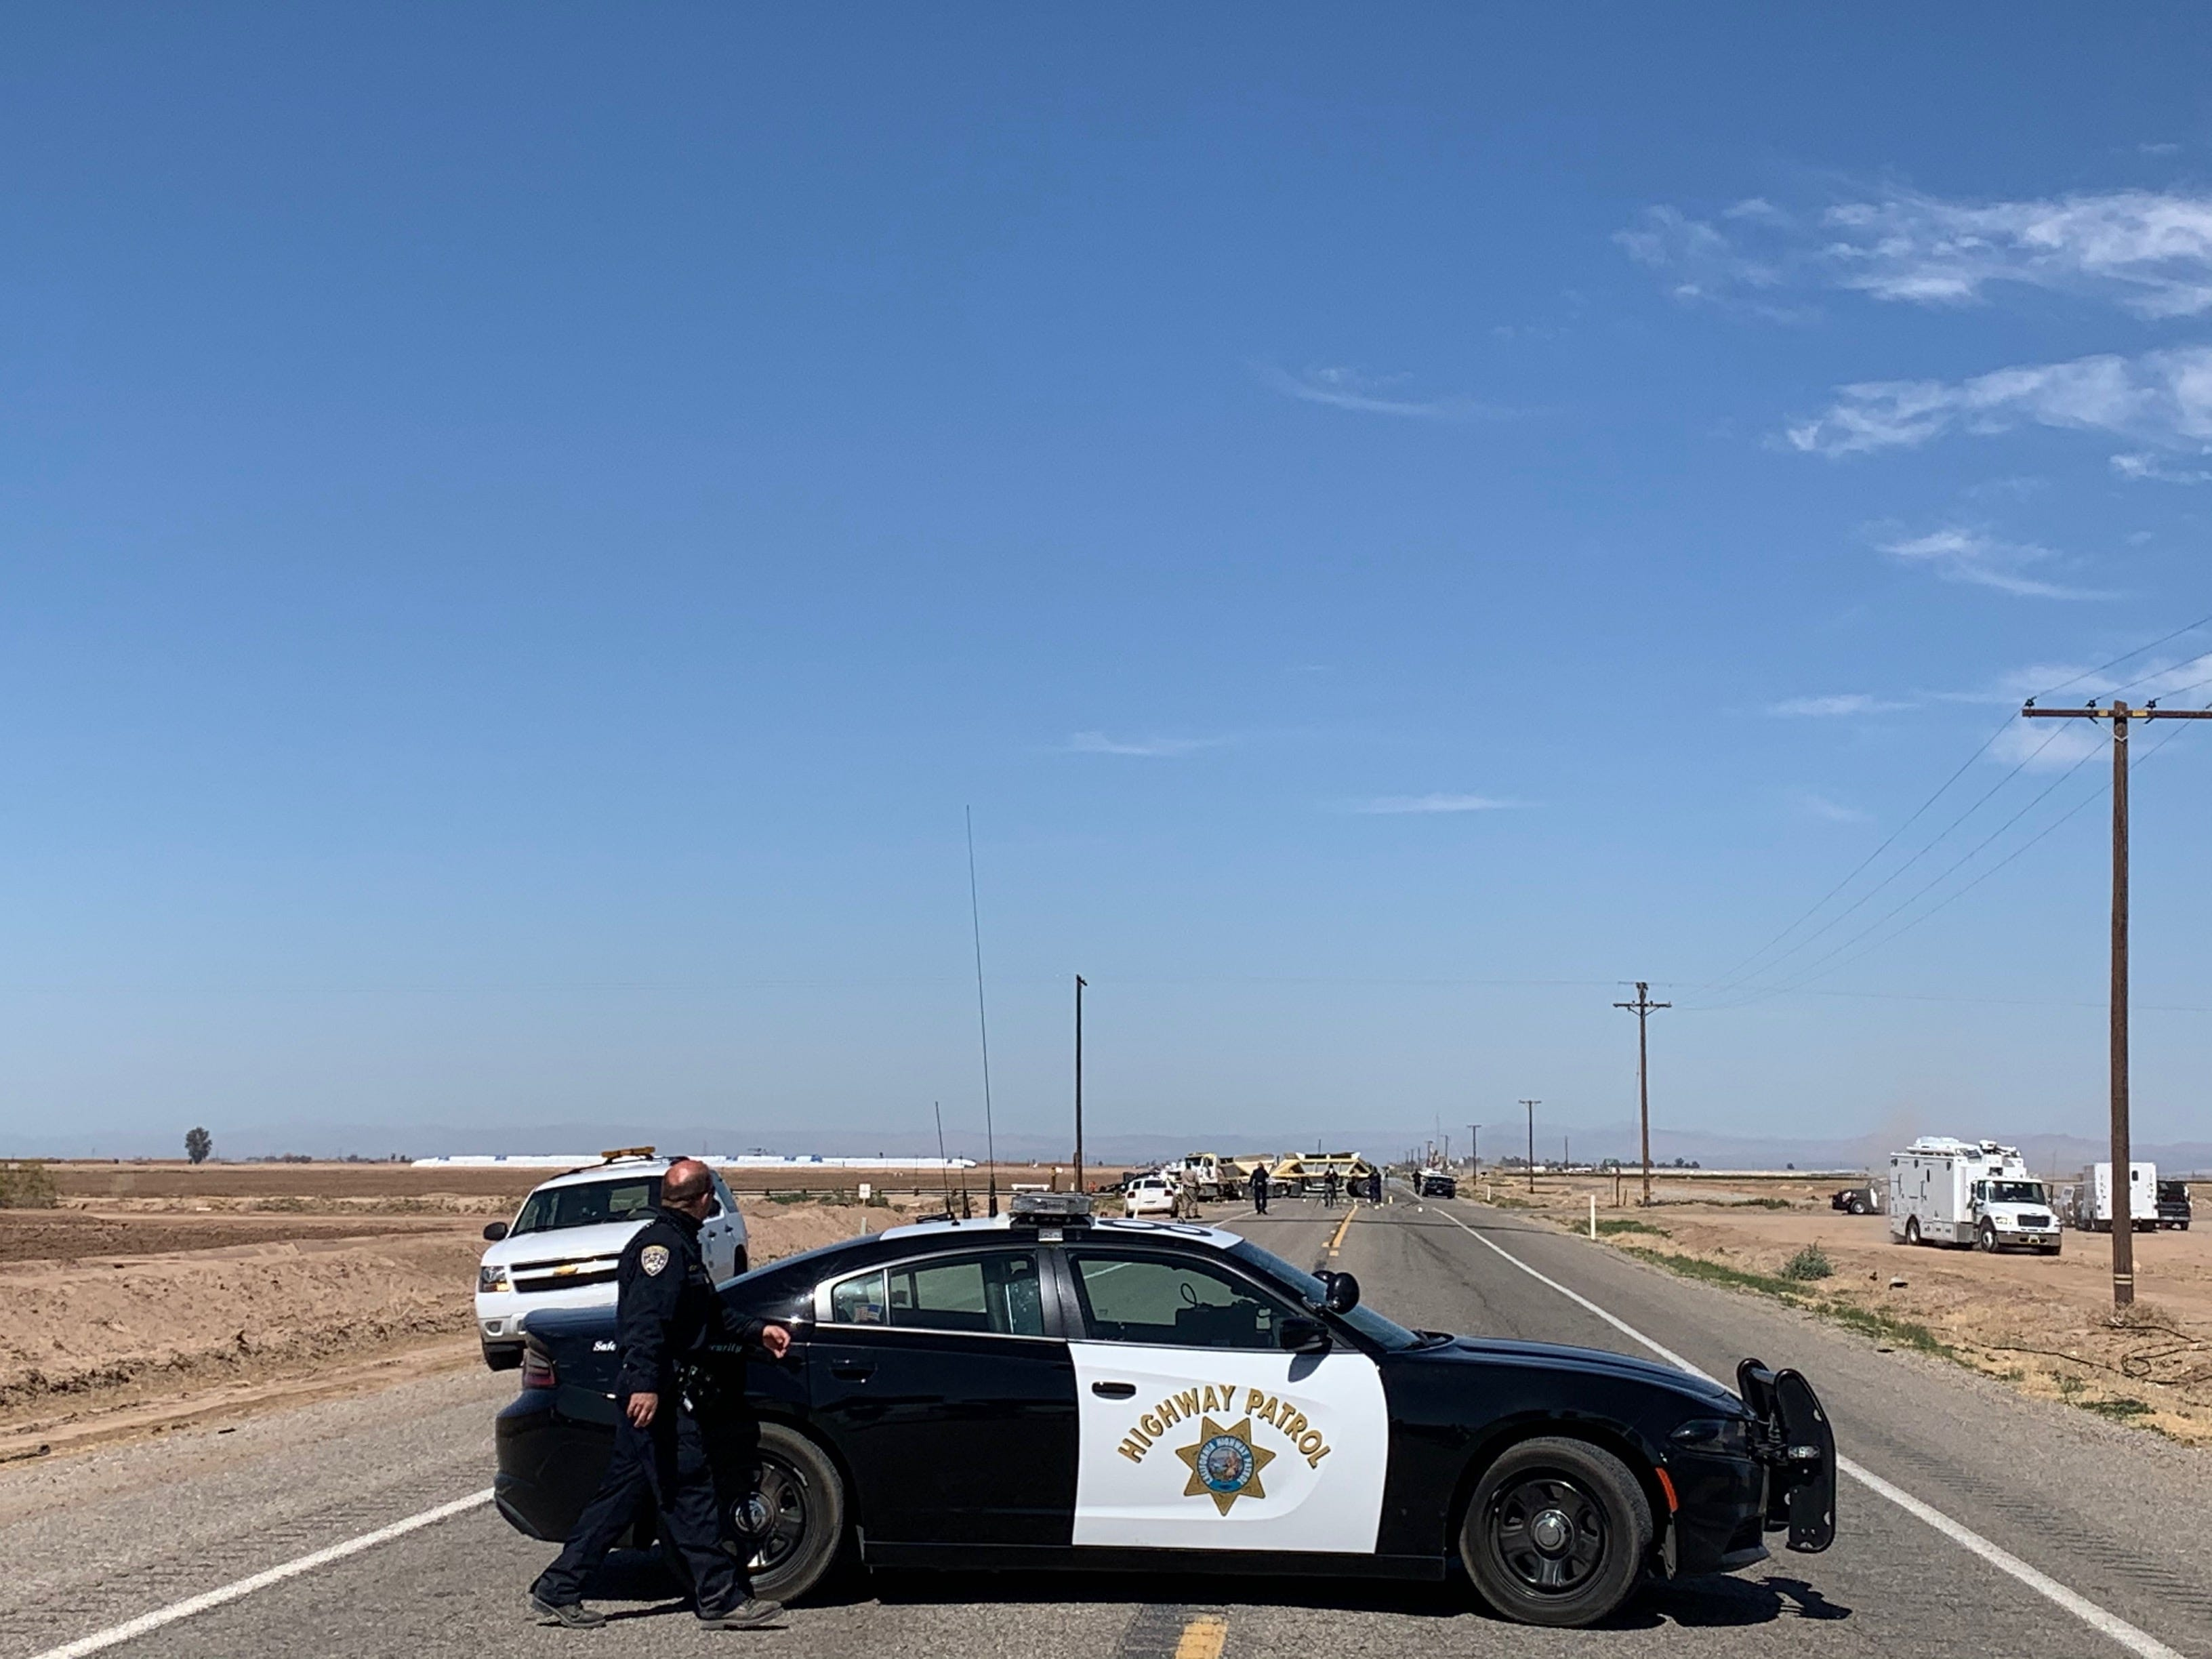 Police push reporters back from the scene on the side of State Route 115 near Holtville, Calif., as investigators scan the area from the sky Tuesday.